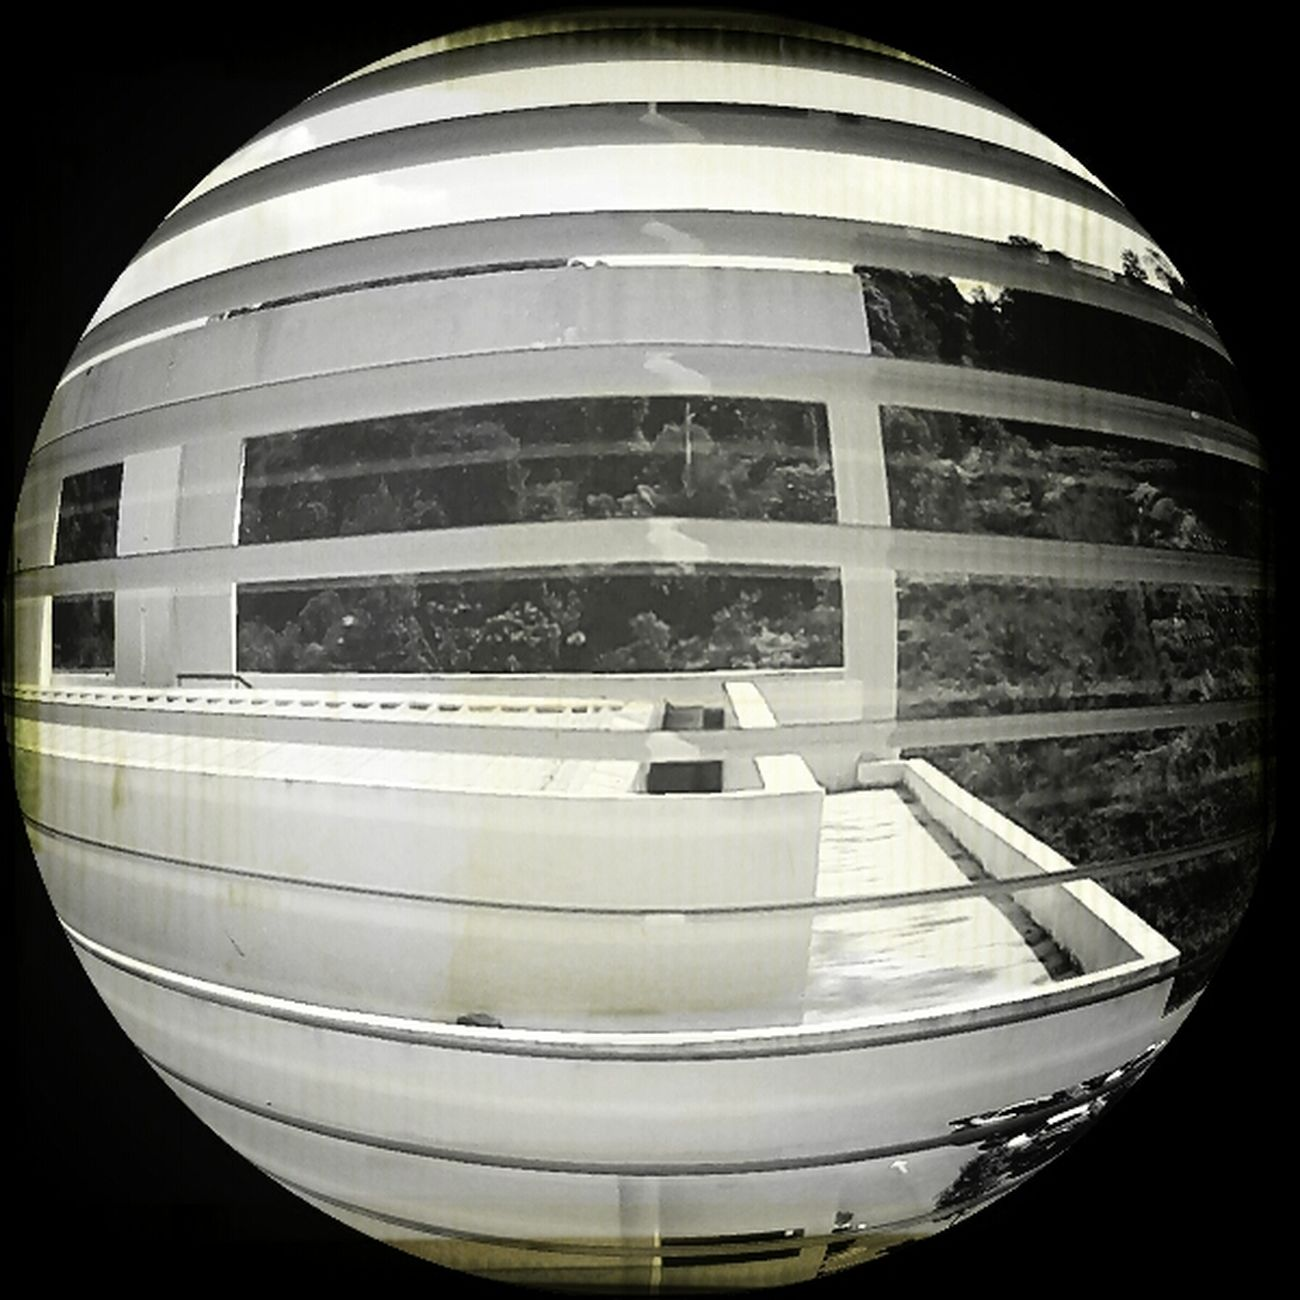 trying fish eye apps.. at puncak alam, from my class. Bored Of Studying Do Nothing Searching for subjects for next photoshoot and have fun